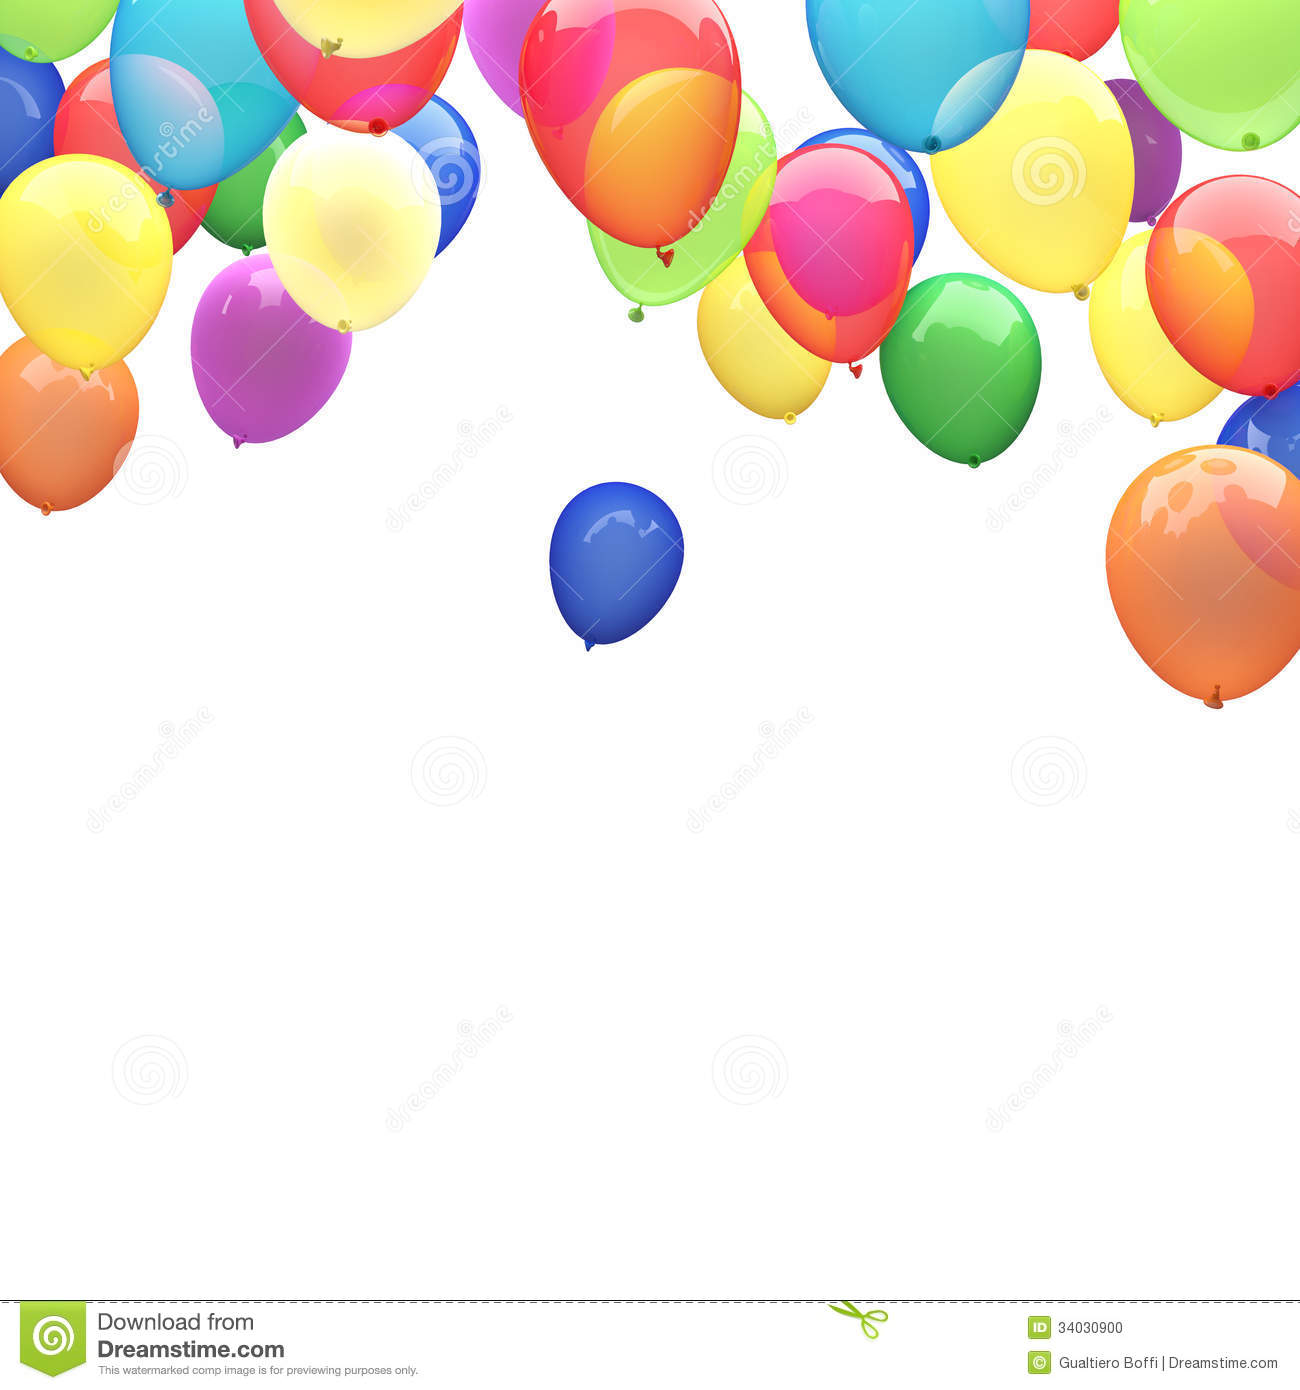 Stockfoto Ballons D Image34030900 on boffi